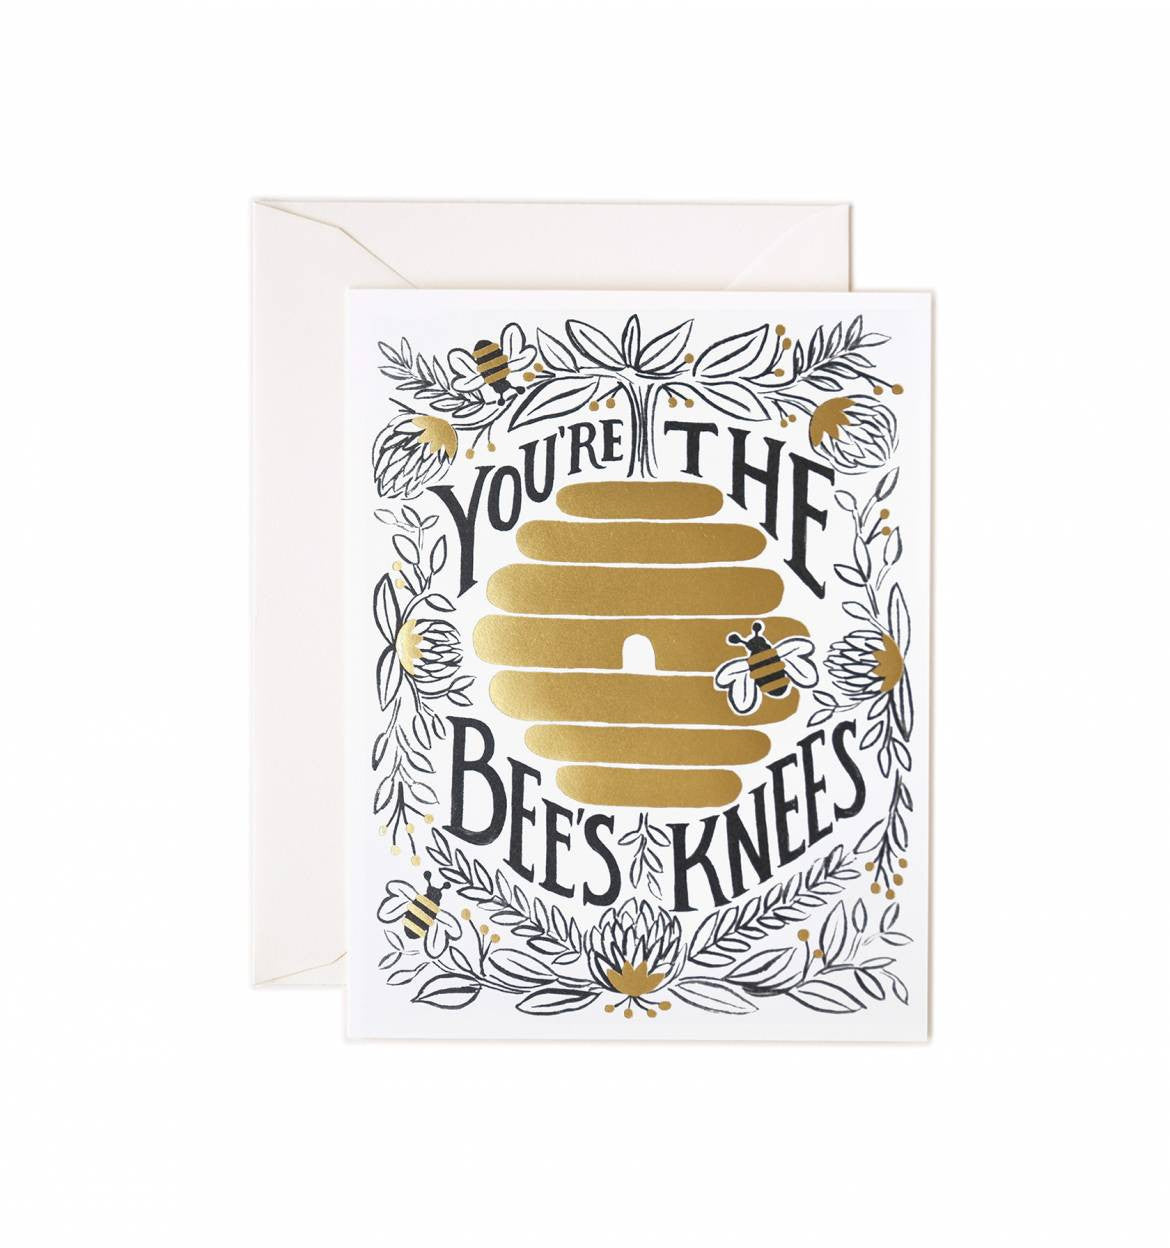 Youre the bees knees 8 greeting cards lavenderstop co youre the bees knees 8 greeting cards m4hsunfo